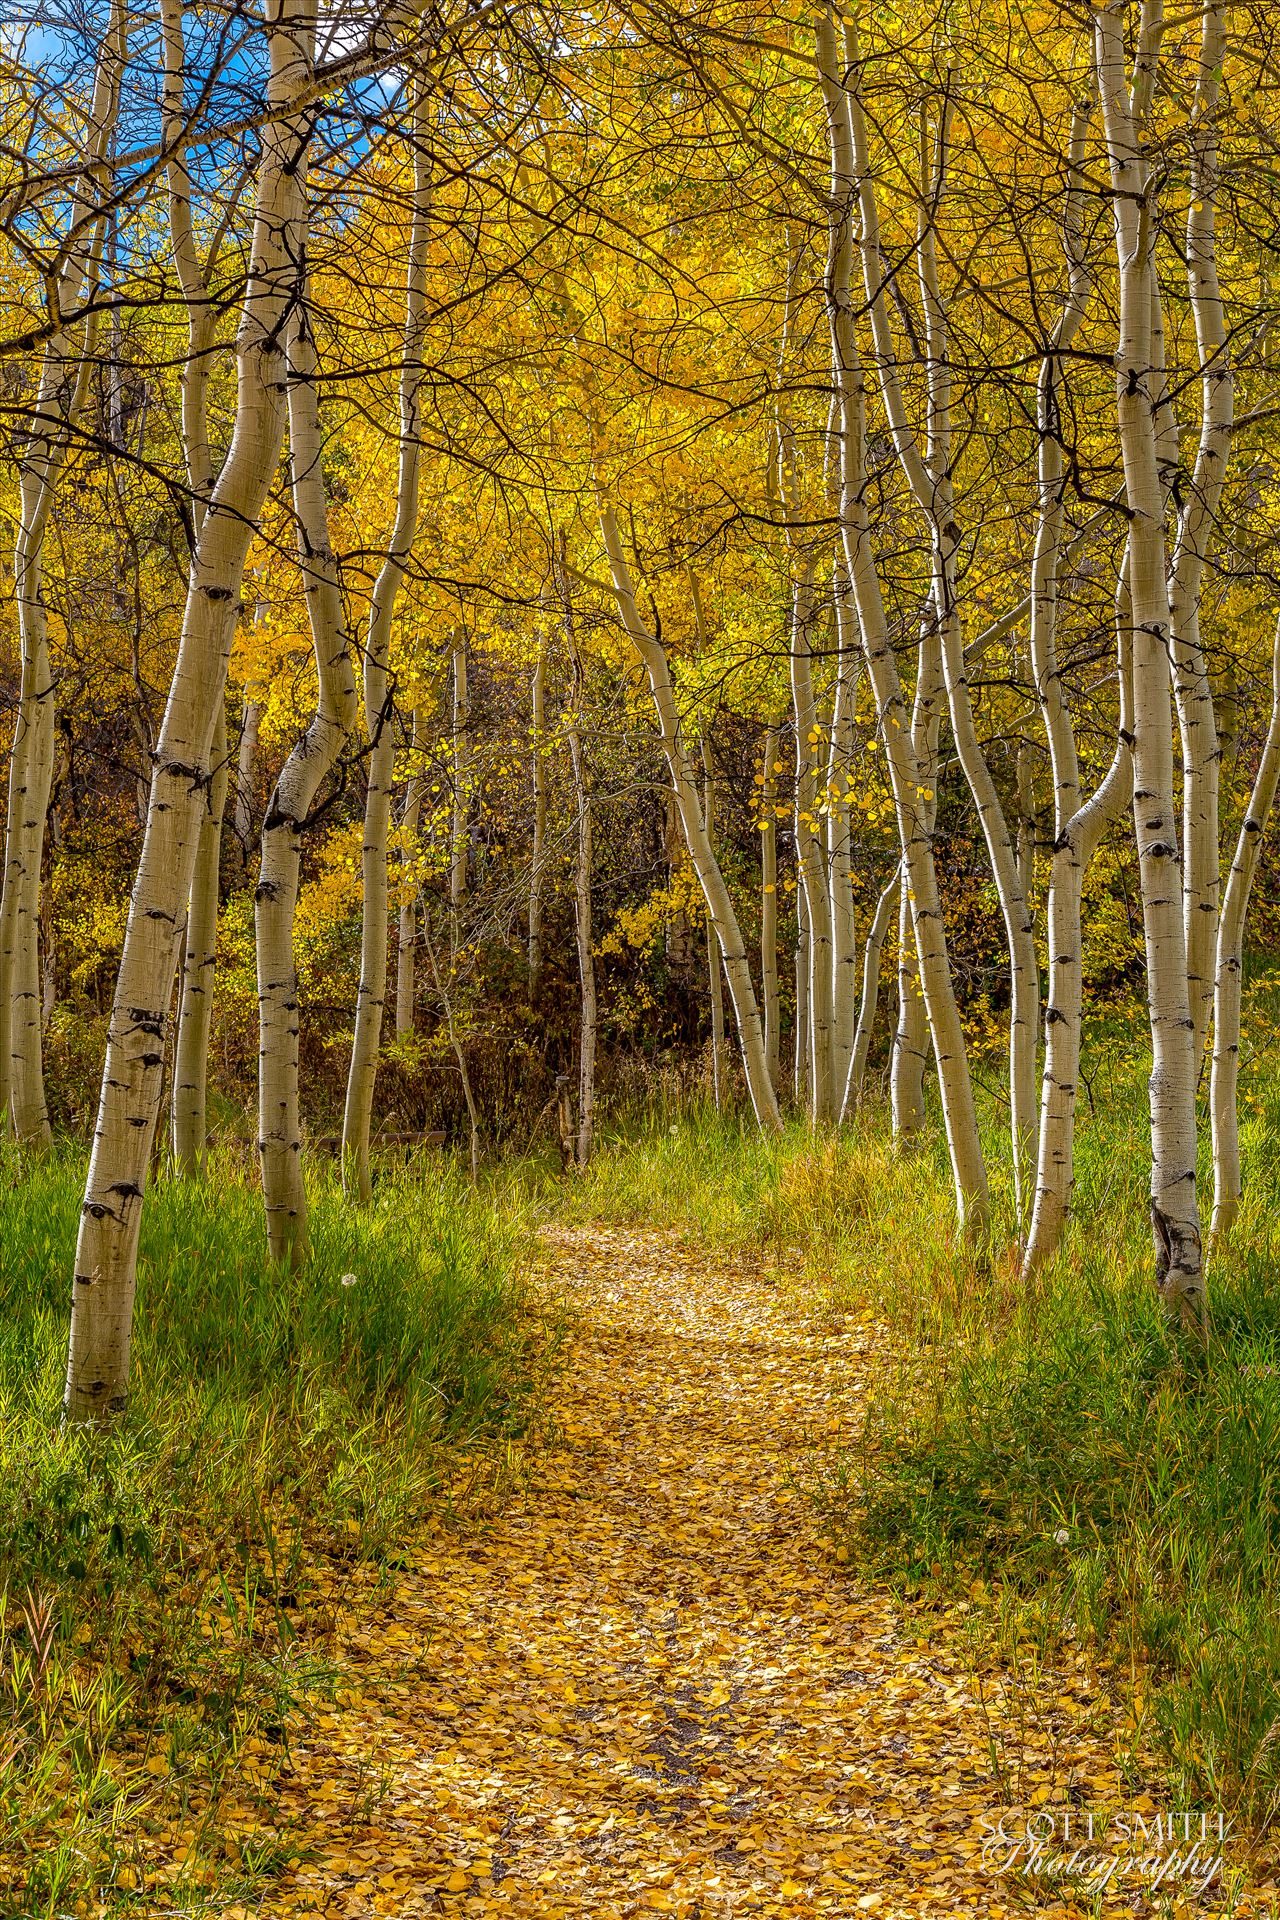 Rim Trail Aspens - Beautiful aspens showing their fall colors along Rim Trail in Snowmass by D Scott Smith